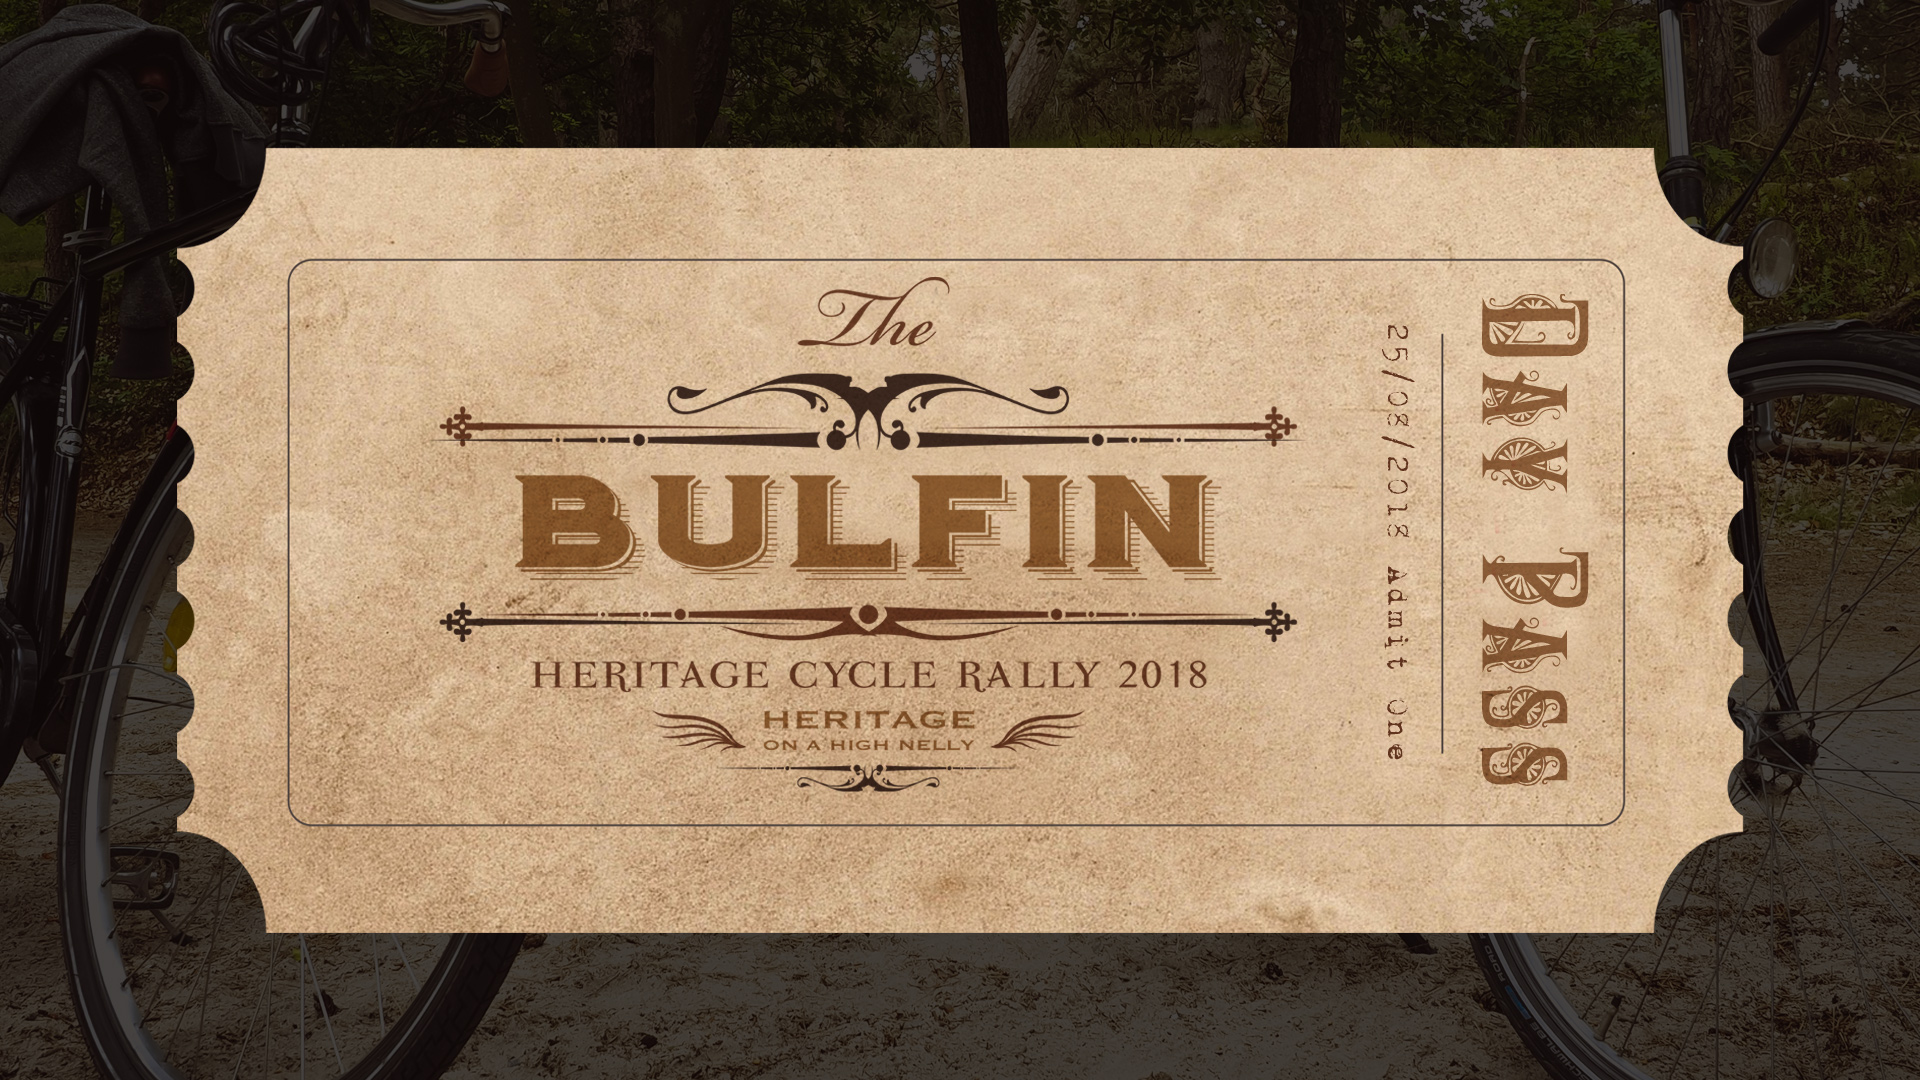 Bulfin Heritage Cycle